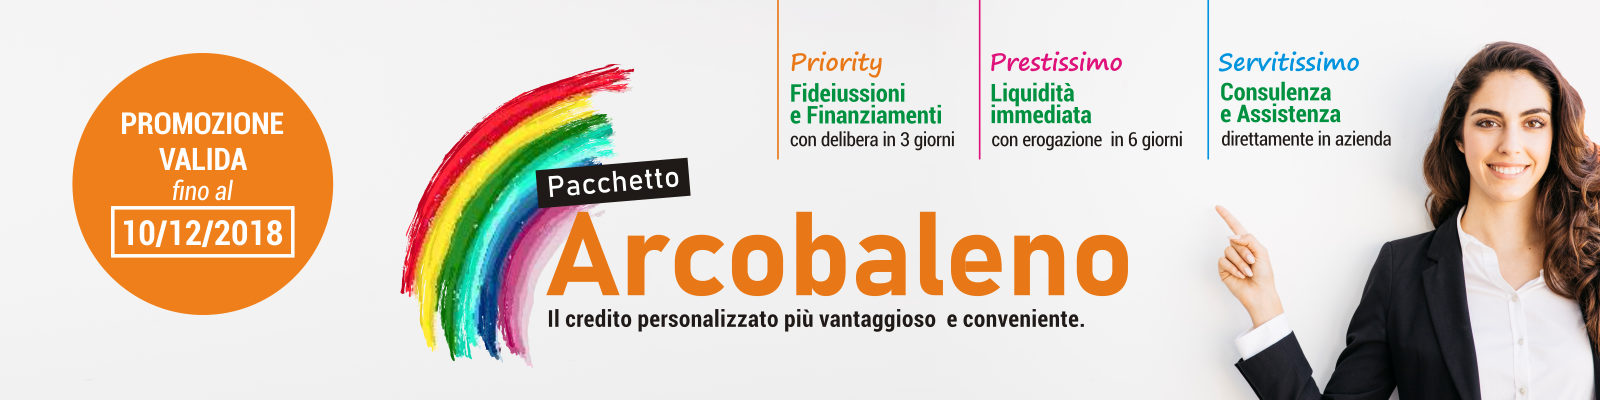 header-pacchetto-arcobaleno-page